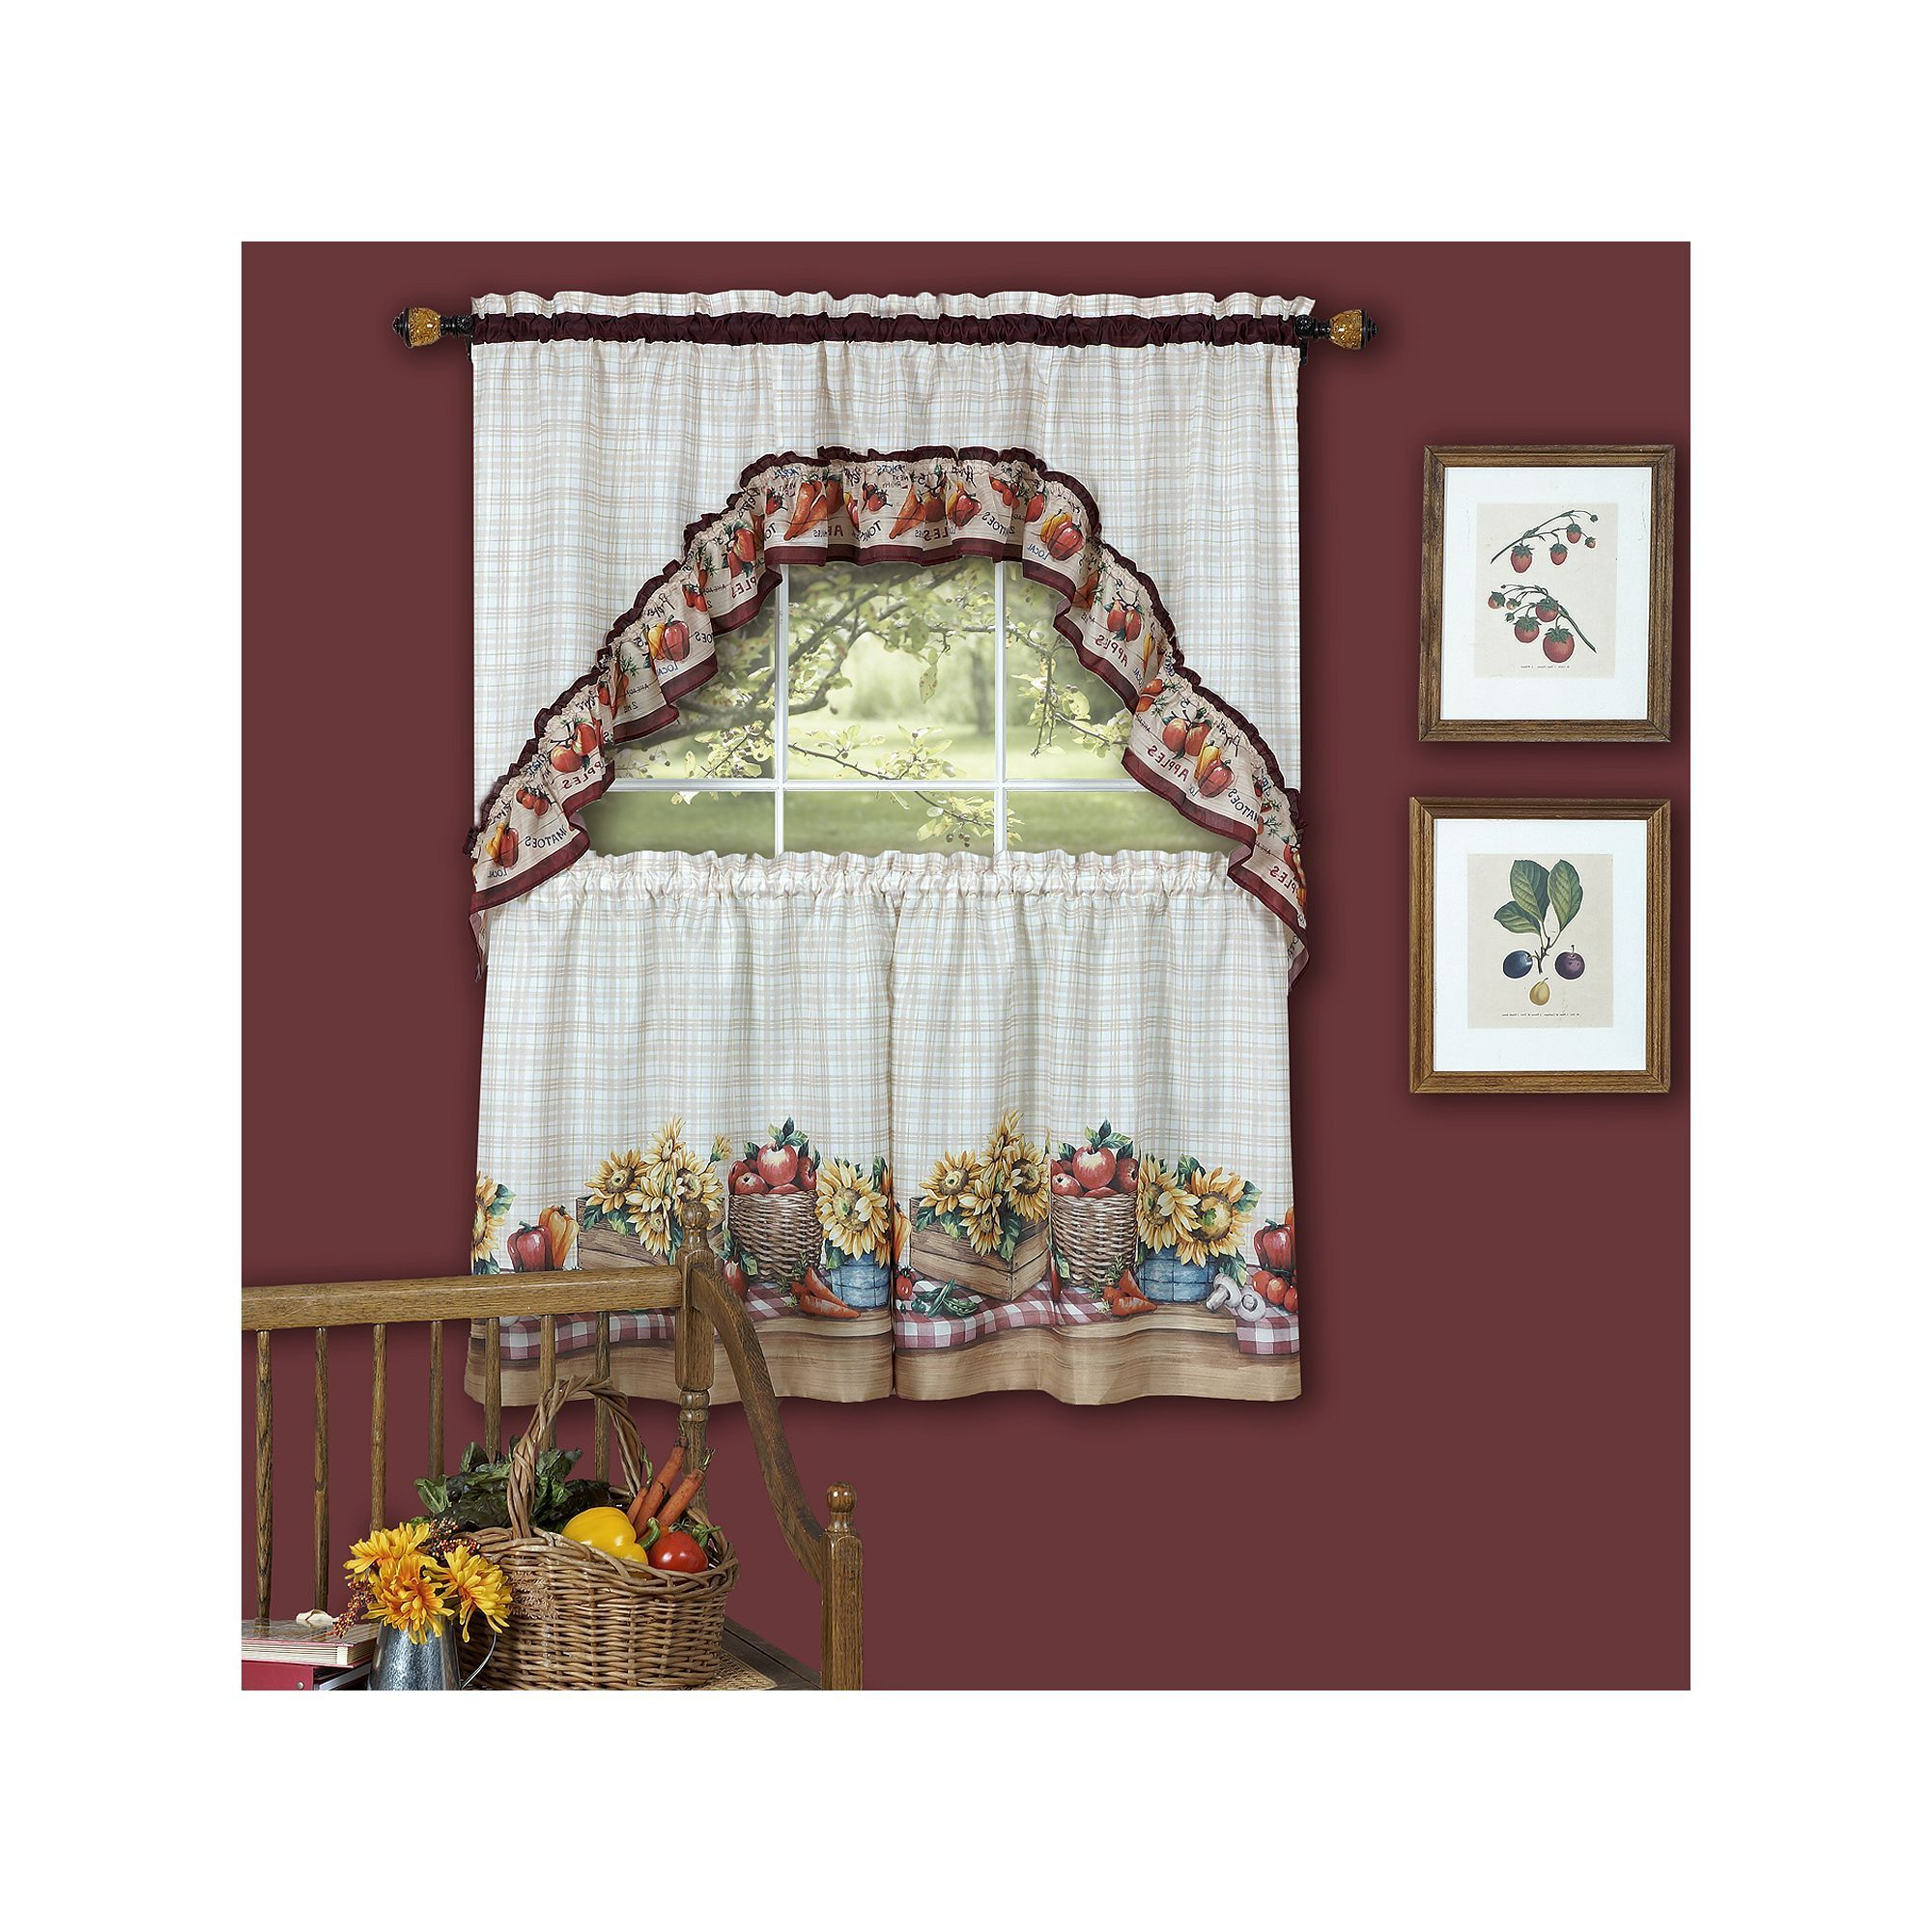 Trendy Farmer's Market 3 Piece Swag Tier Kitchen Window Curtain Set Intended For Window Curtains Sets With Colorful Marketplace Vegetable And Sunflower Print (View 4 of 20)